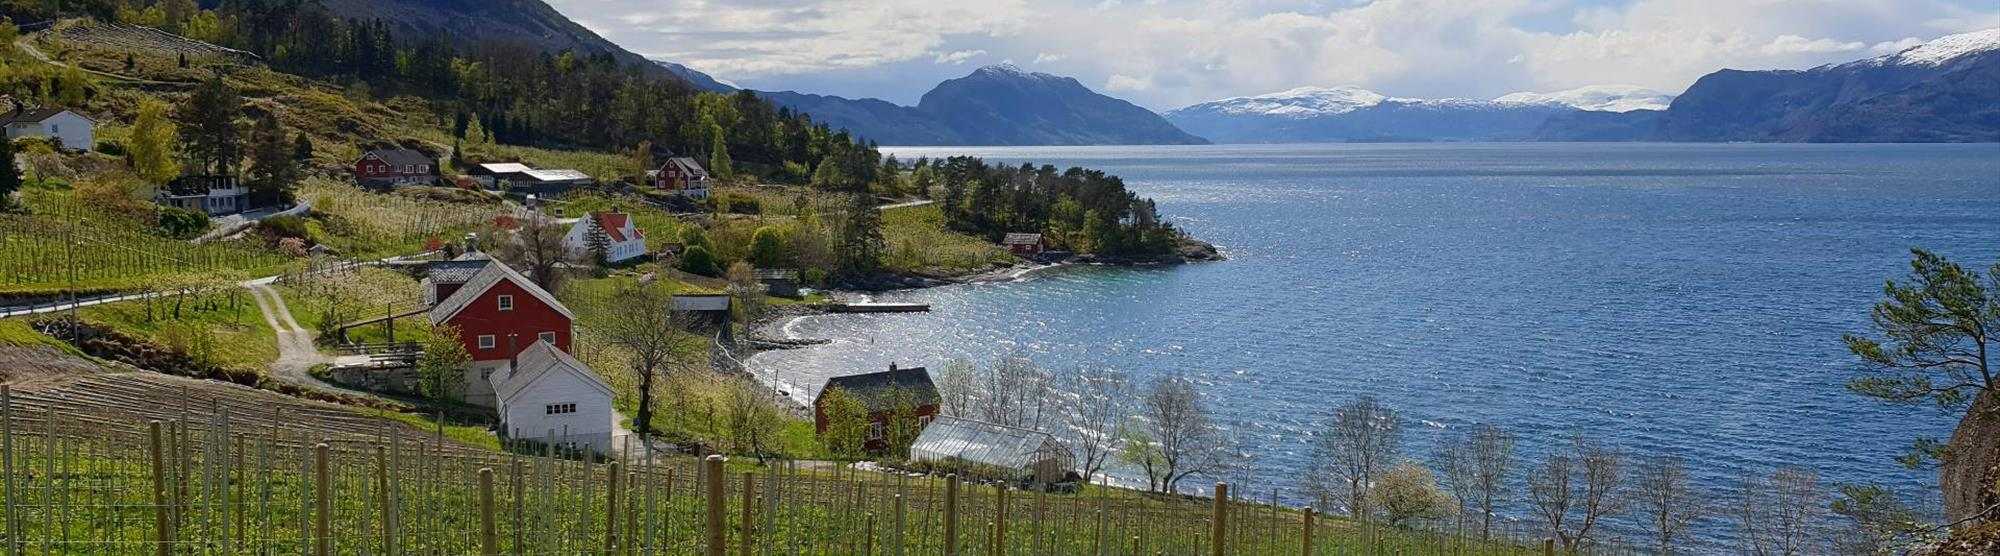 "The ""champagne"" of apple cider comes from Hardanger"